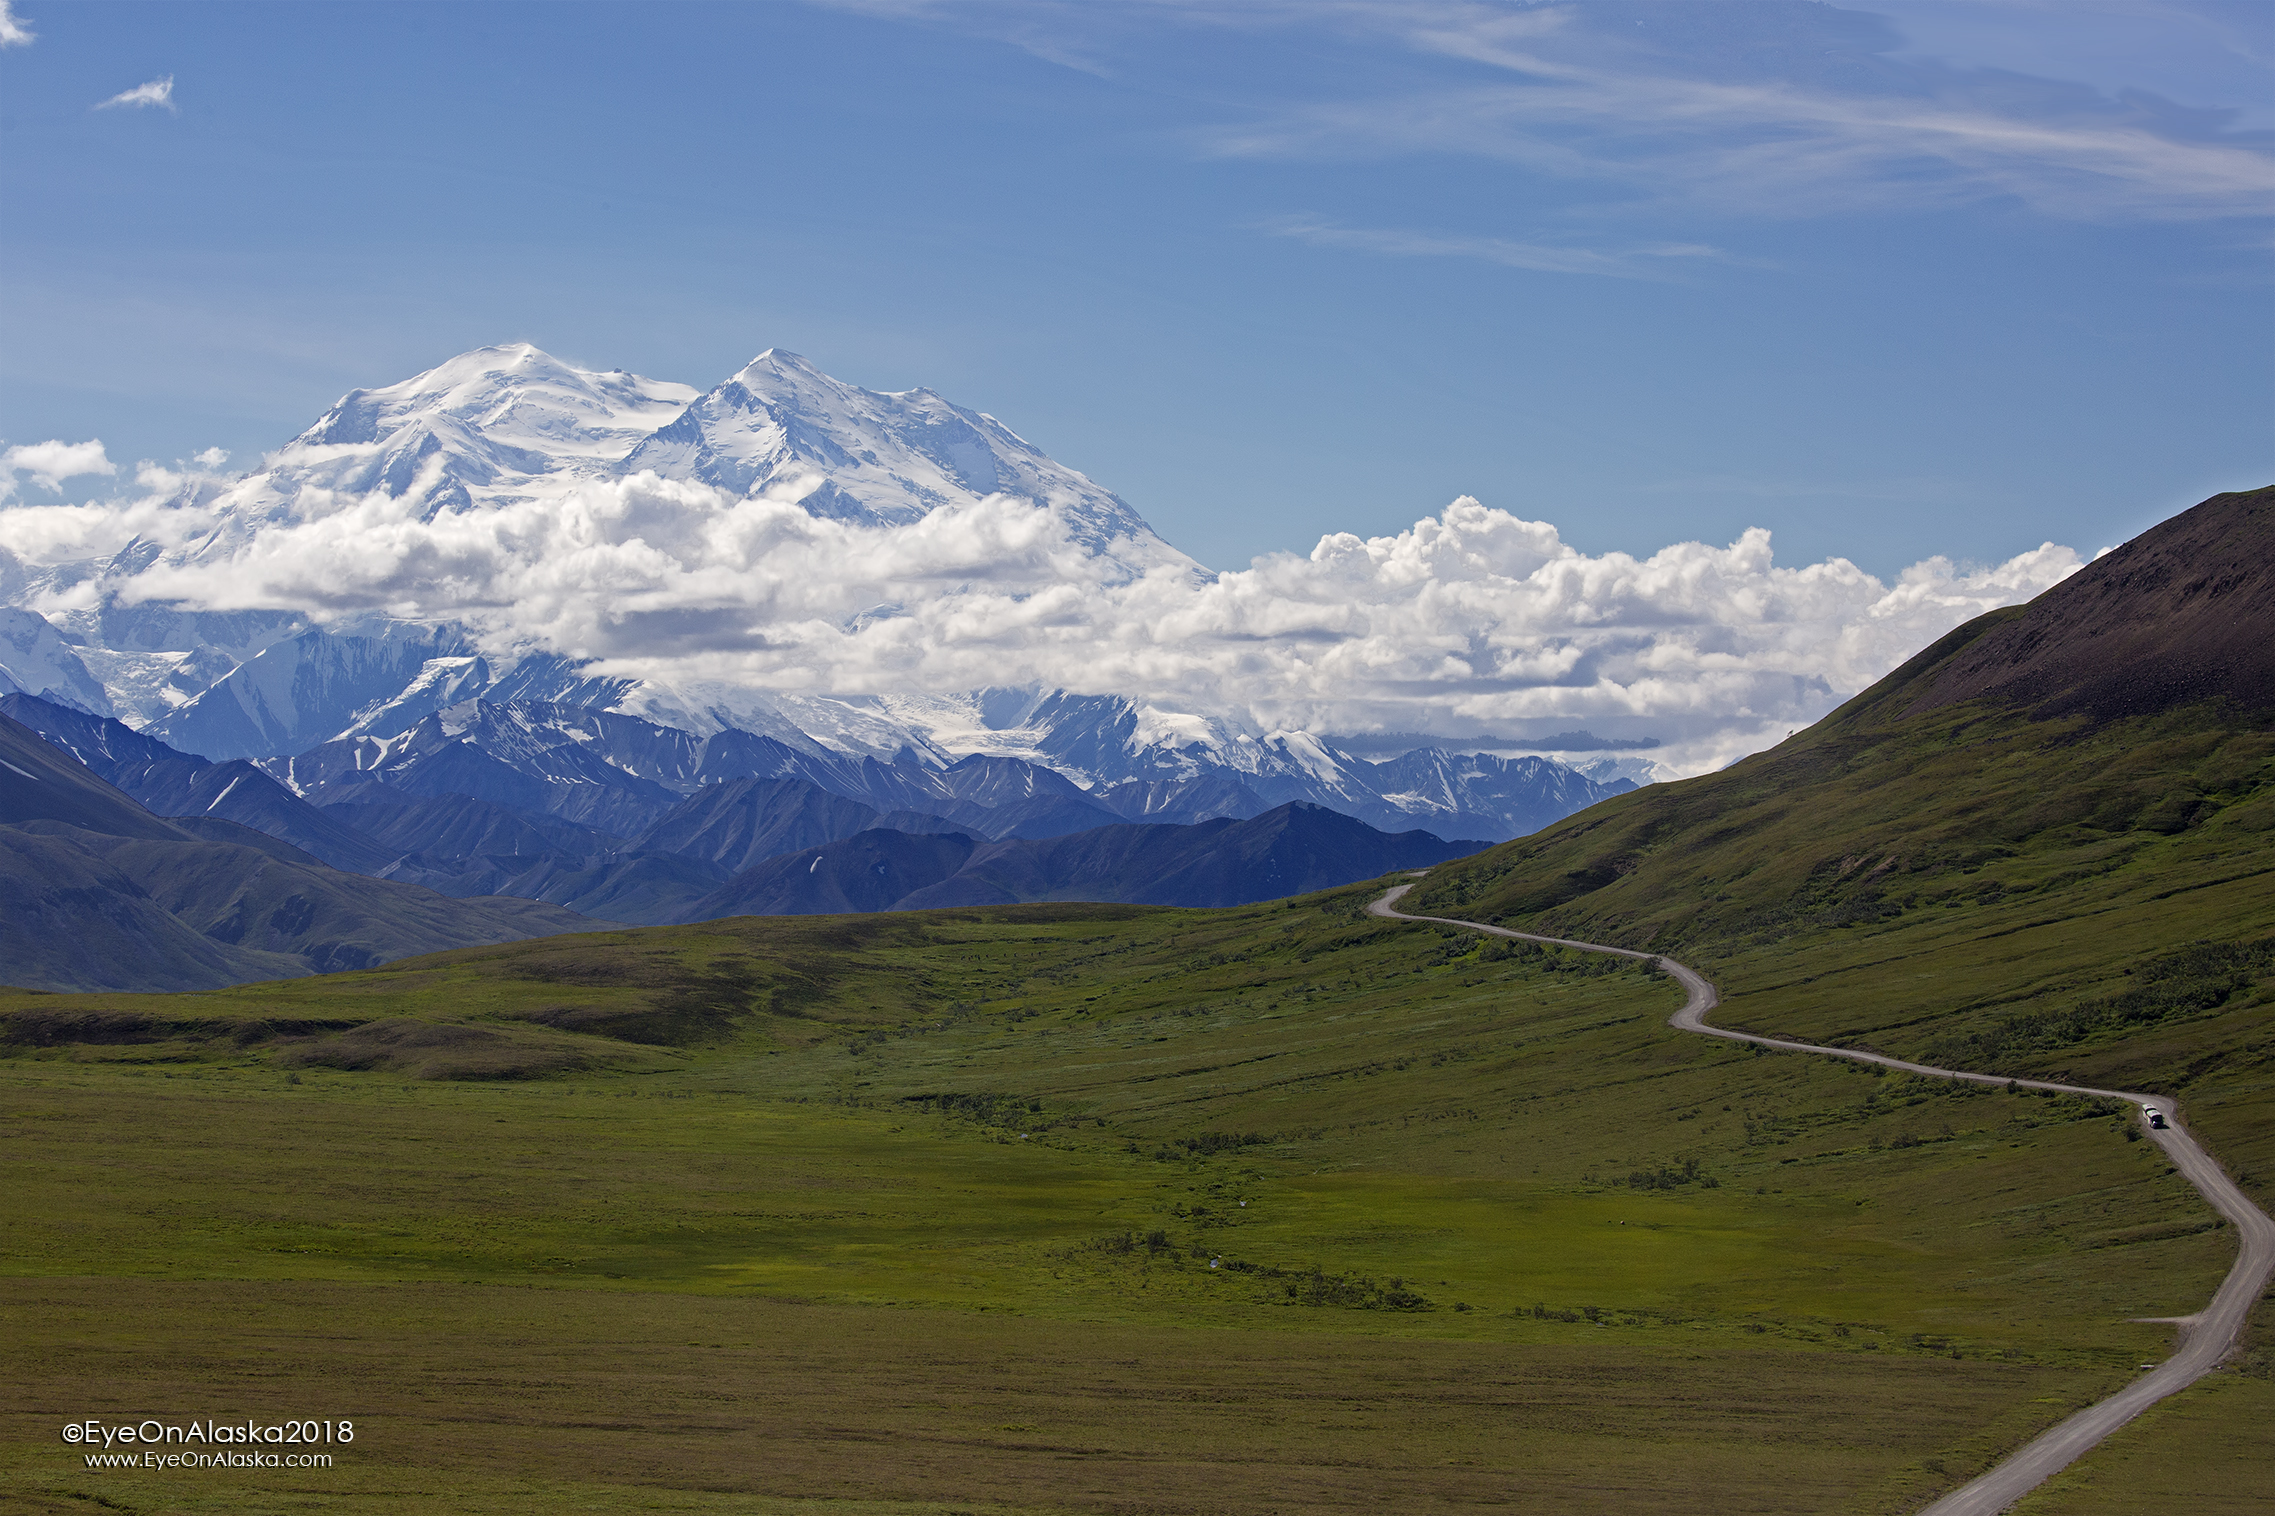 Denali is out and showing off! What a beautiful day. There's a surprise in store as well.  There are a couple of buses pulled over down on the flats looking at something.  Usually means there's an animal around.